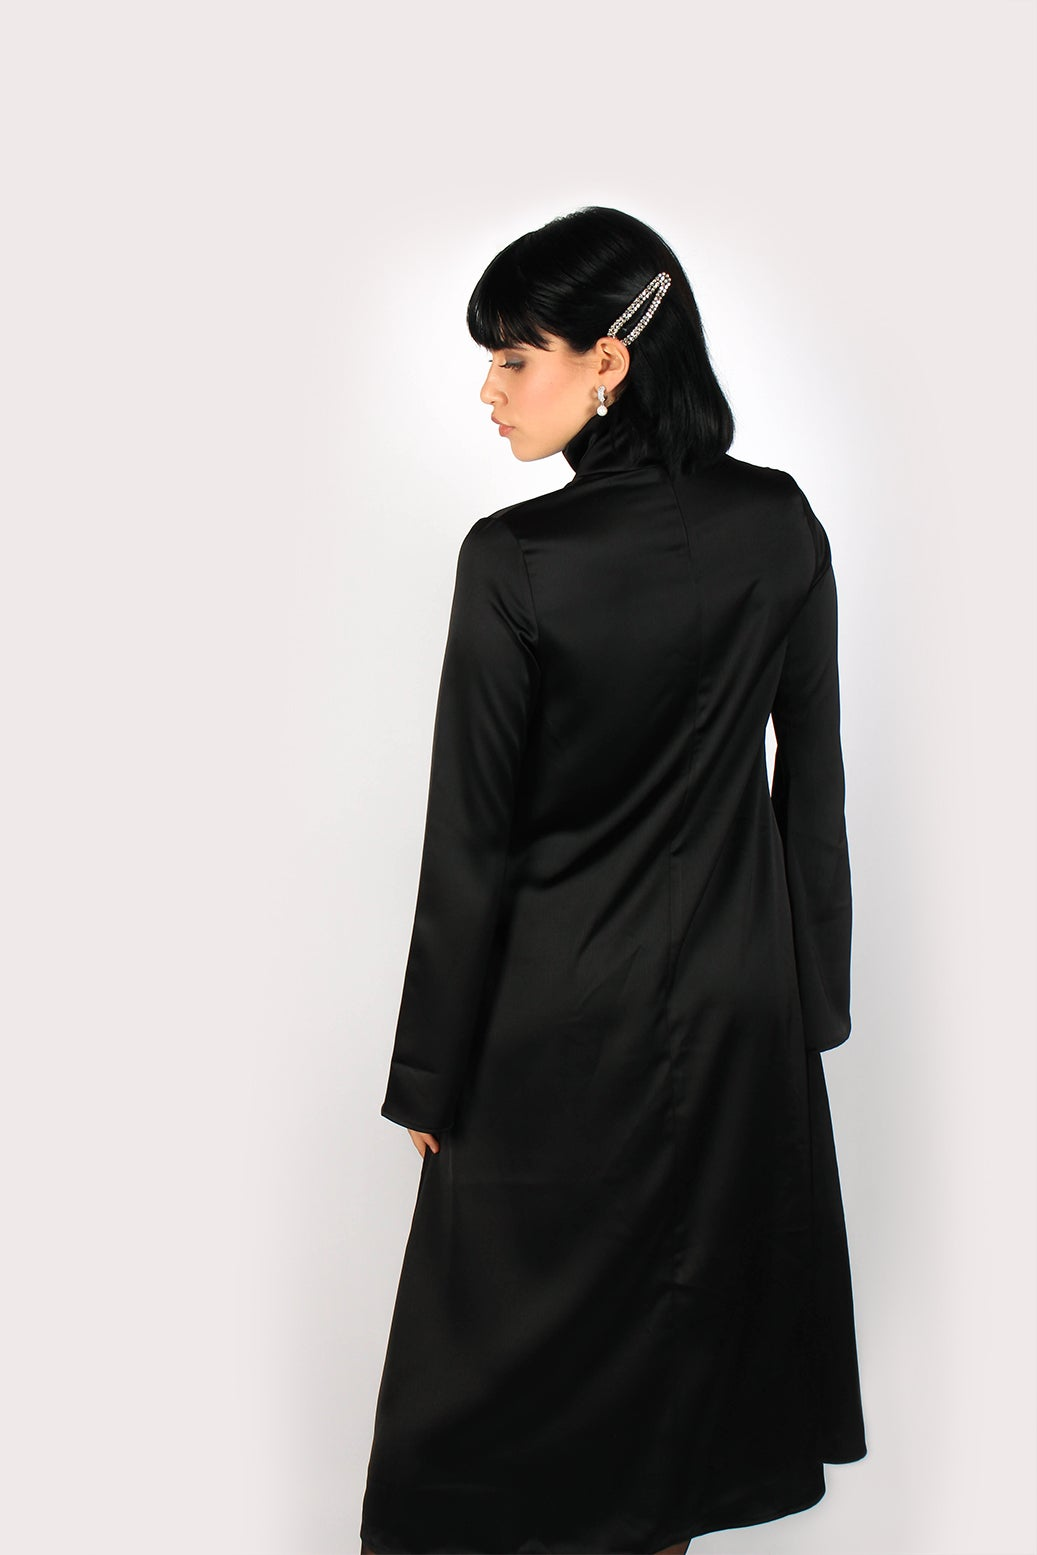 Image of ALAYA RASO NERO €165 -50%